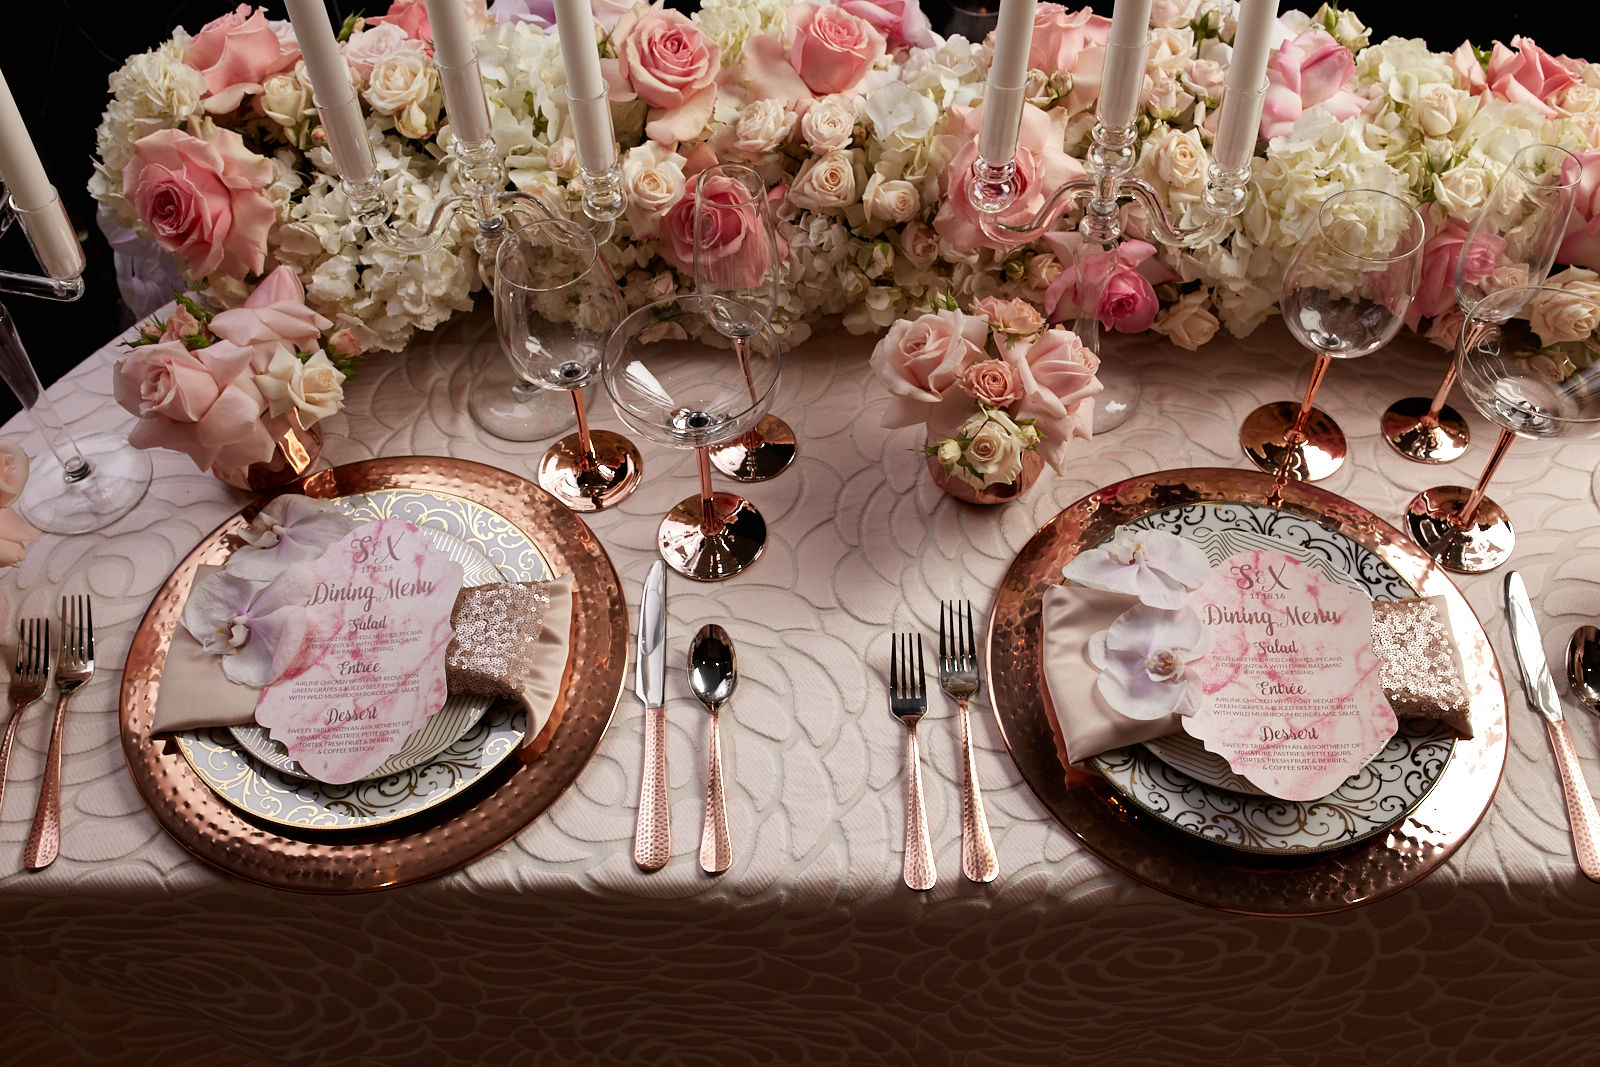 Dinner for Two - Sweetheart Table